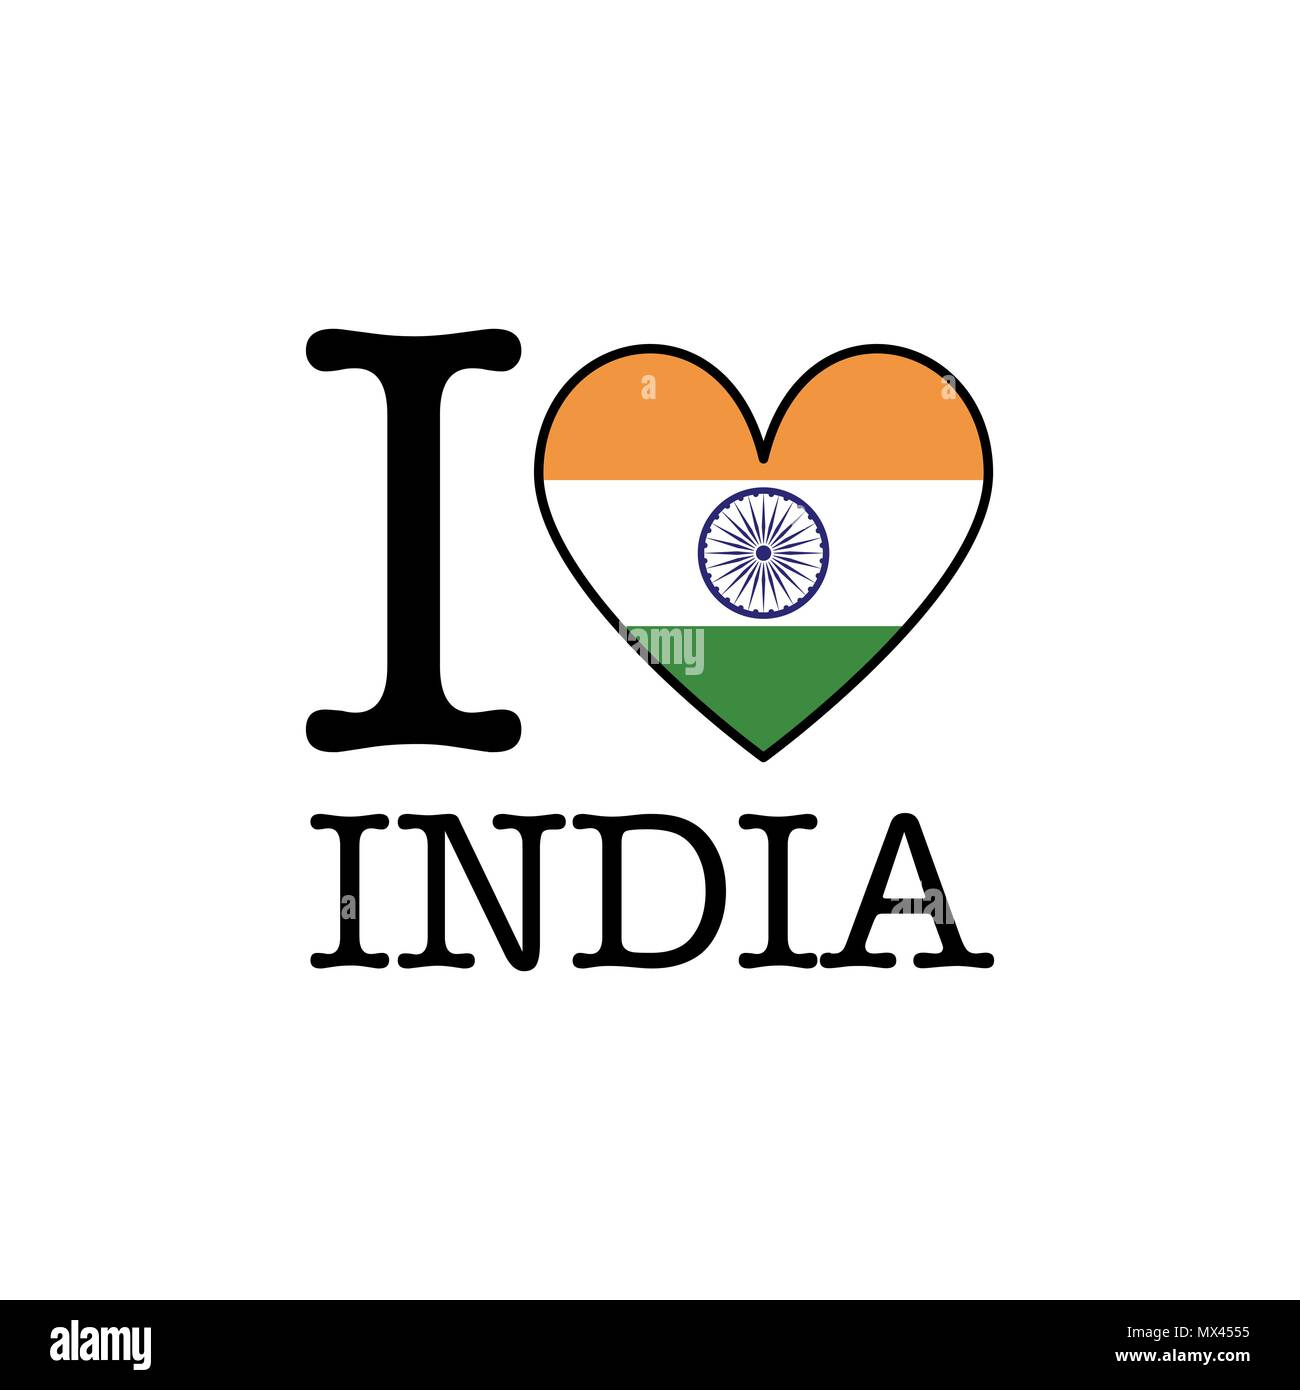 I Love My India Stock Photos & I Love My India Stock Images